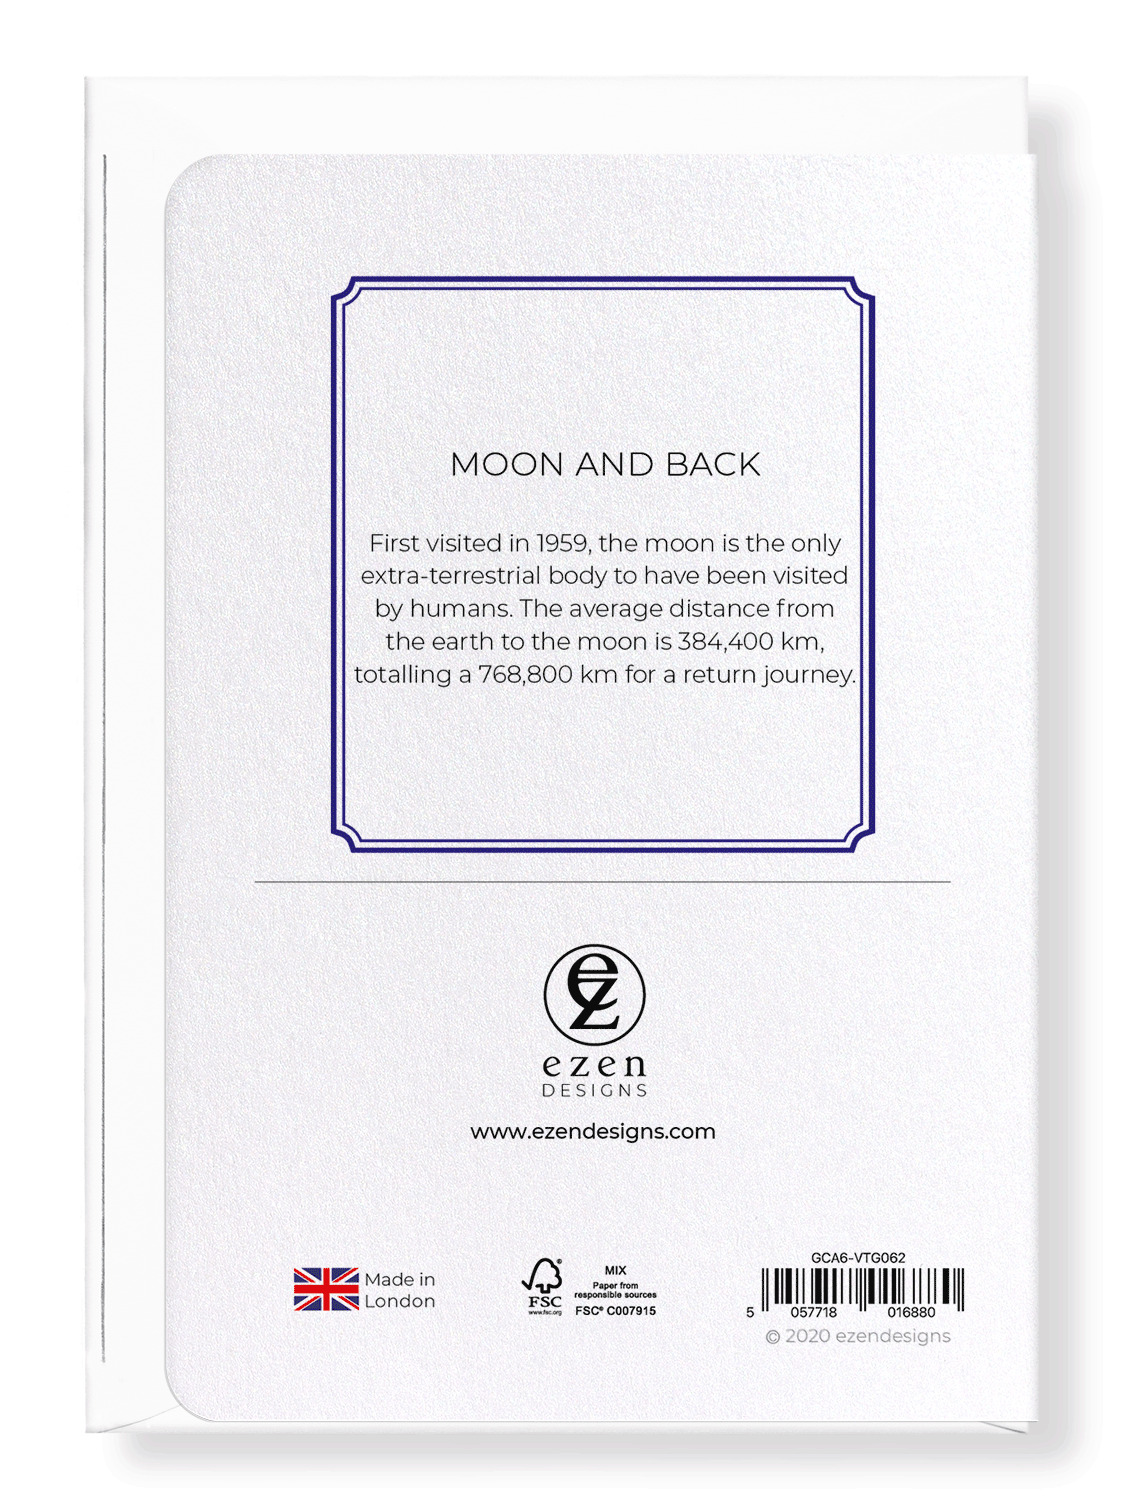 Ezen Designs - Moon and back - Greeting Card - Back